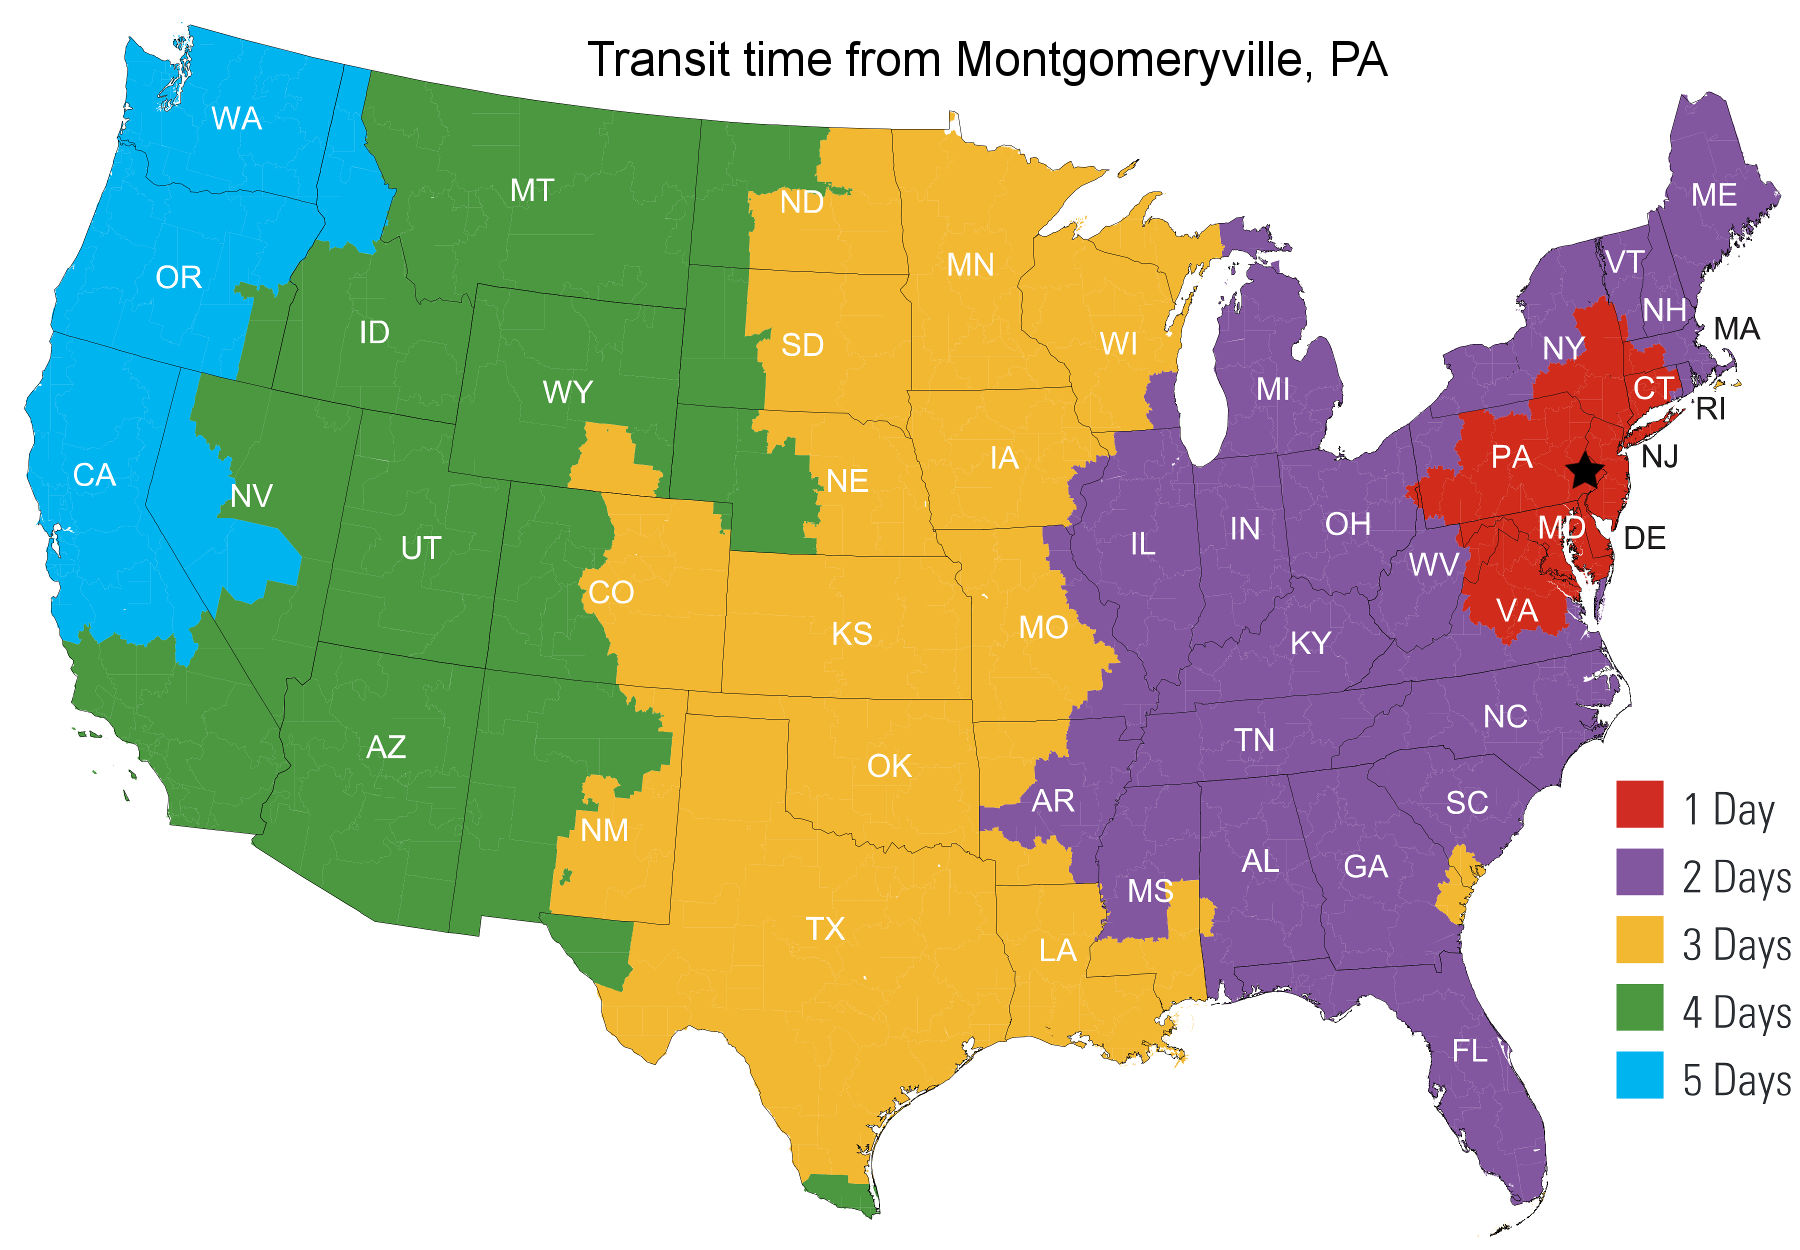 Transit time map from Montgomeryville, PA